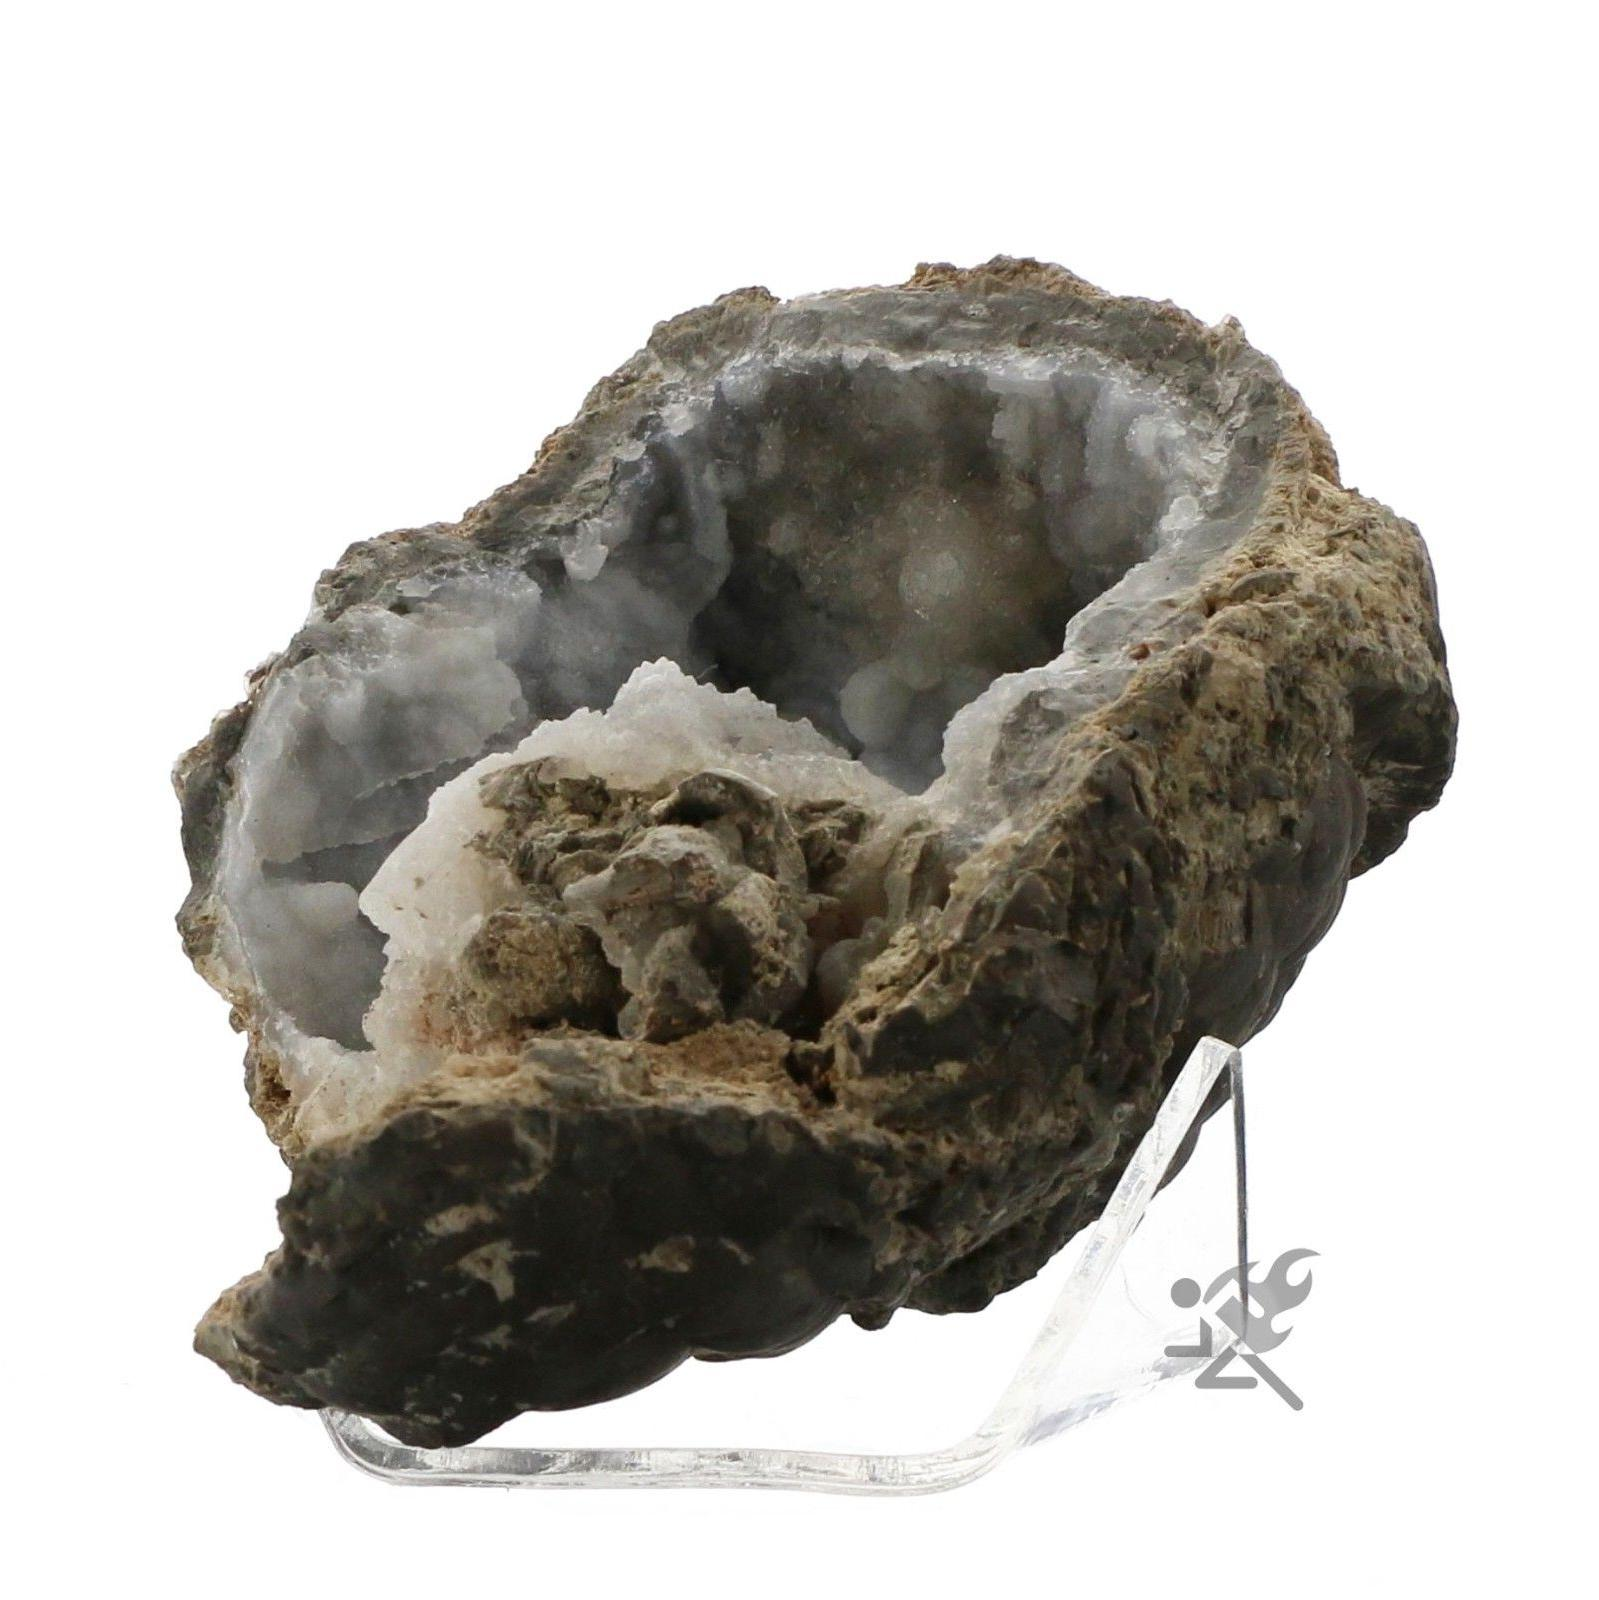 Geode Fossil Mineral Rock Display Stand Holders 3-inch Acrylic